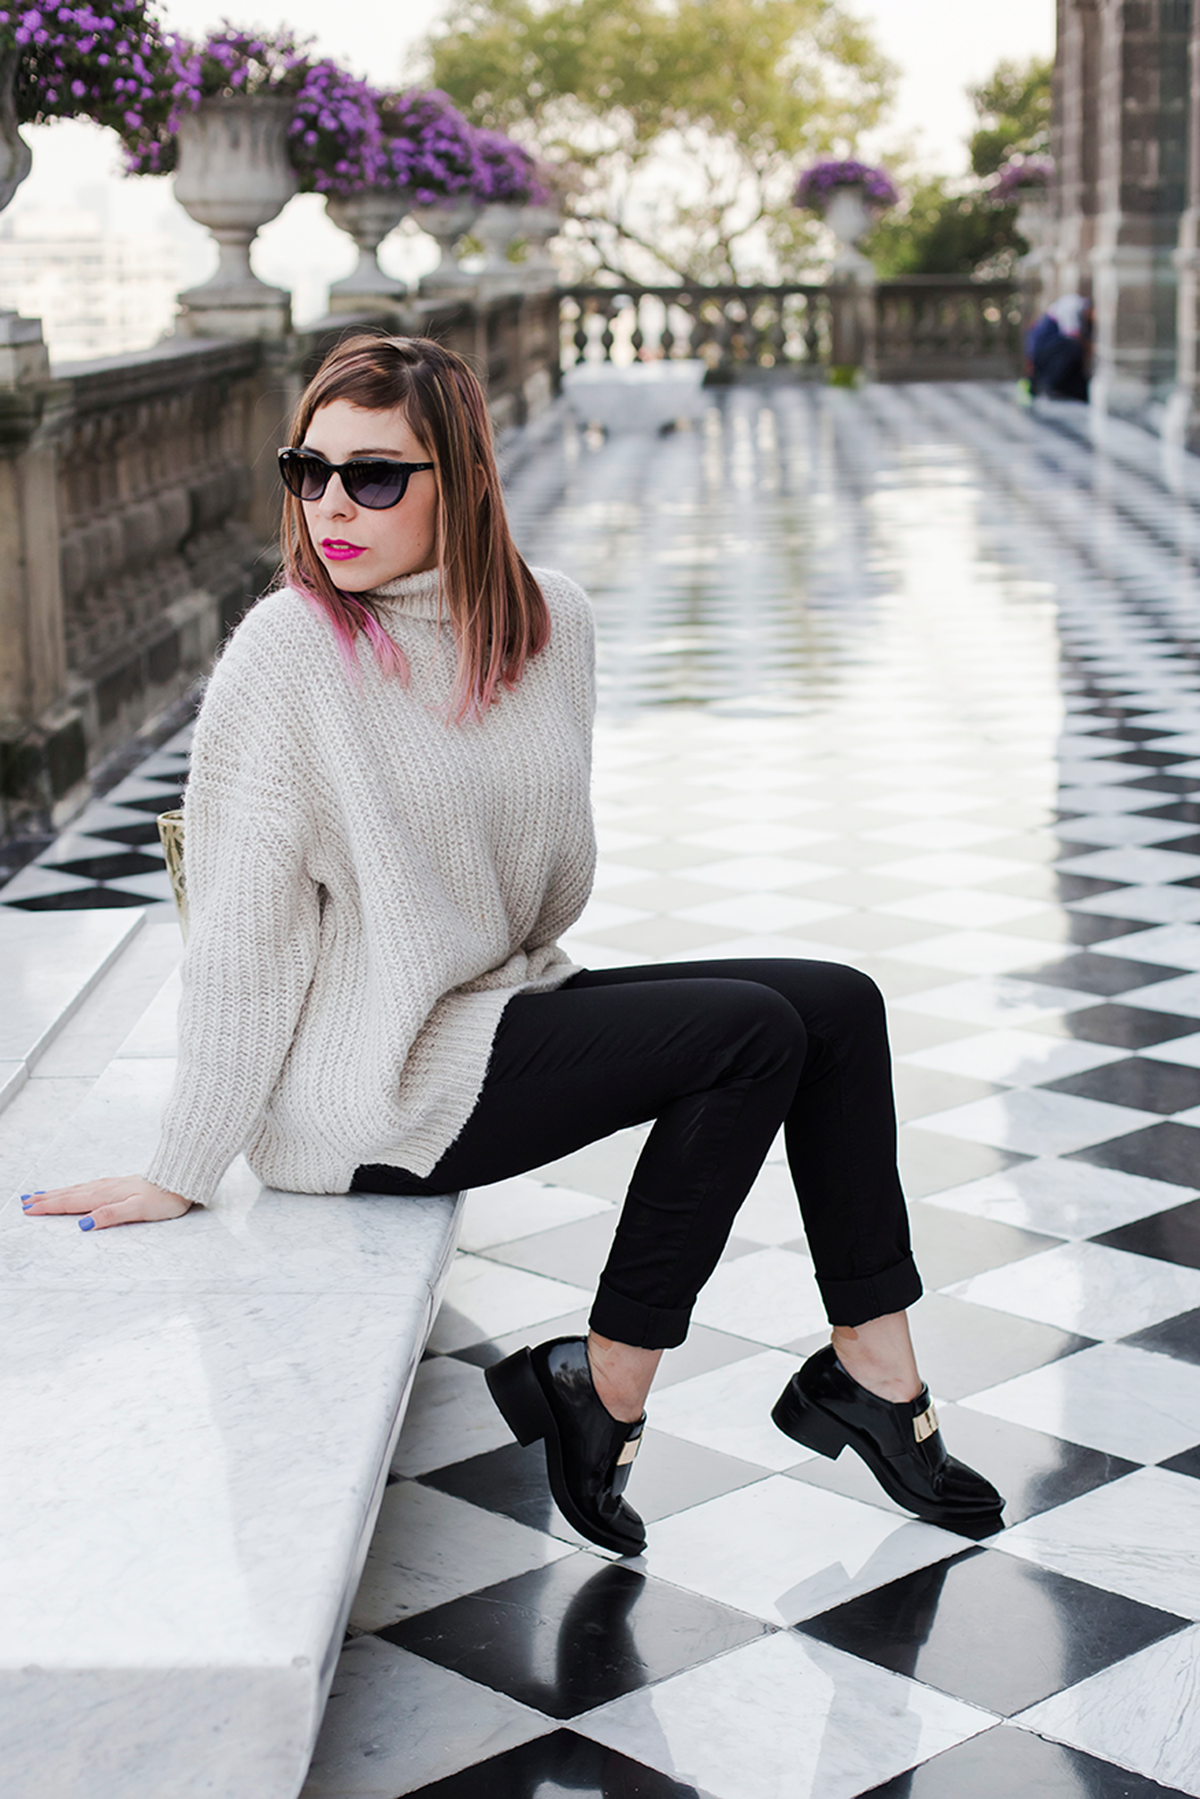 Fashion Outifit tiled floor